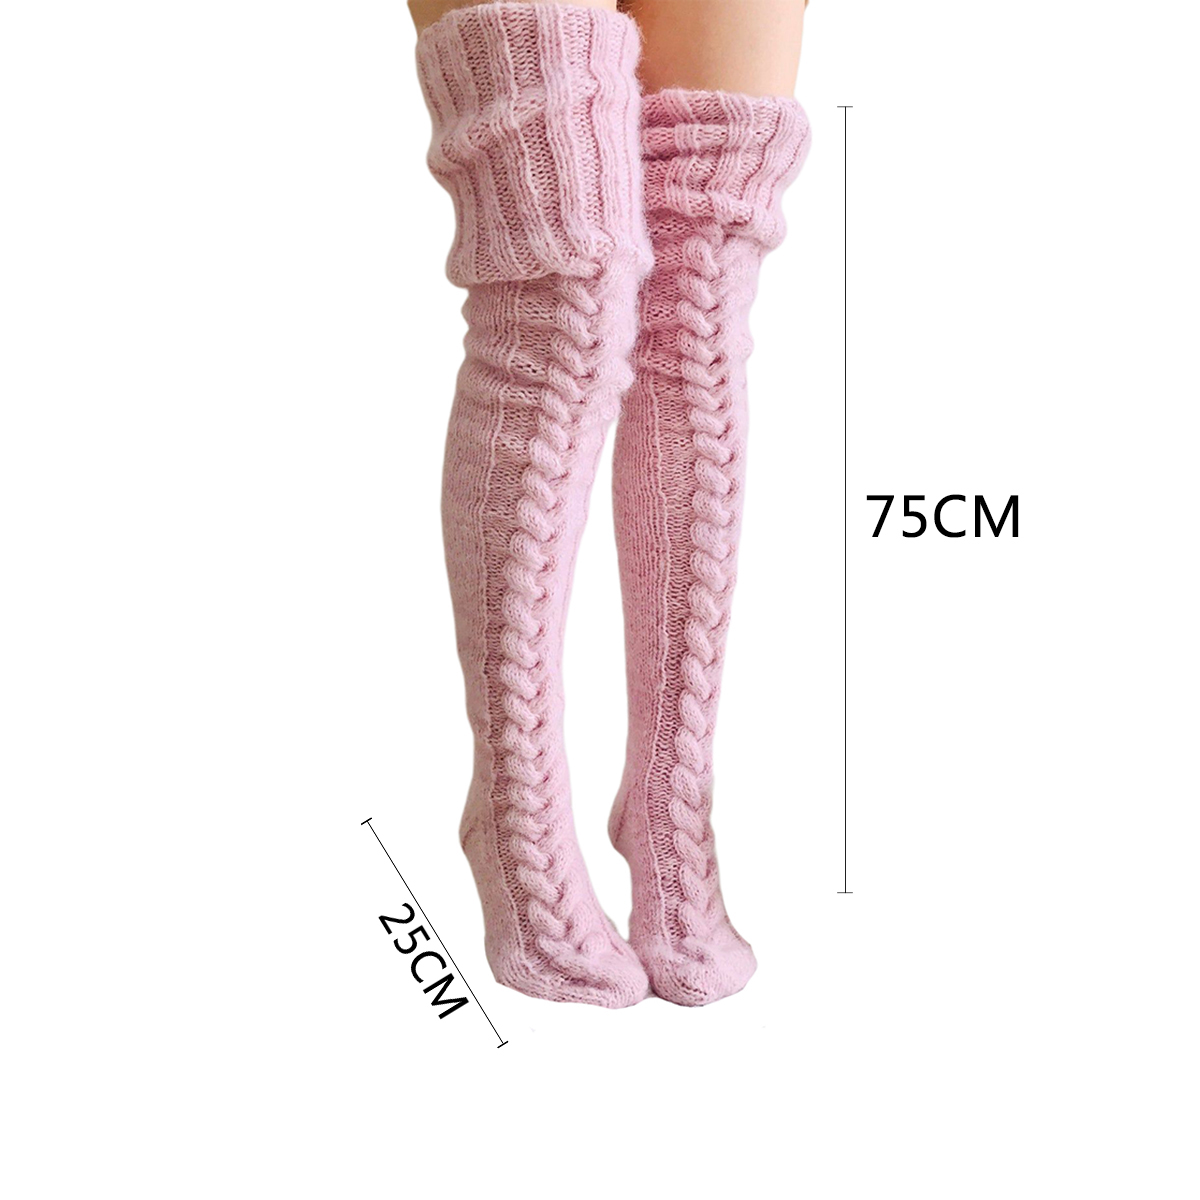 Soxi™ – Over The Knee Knit Socks